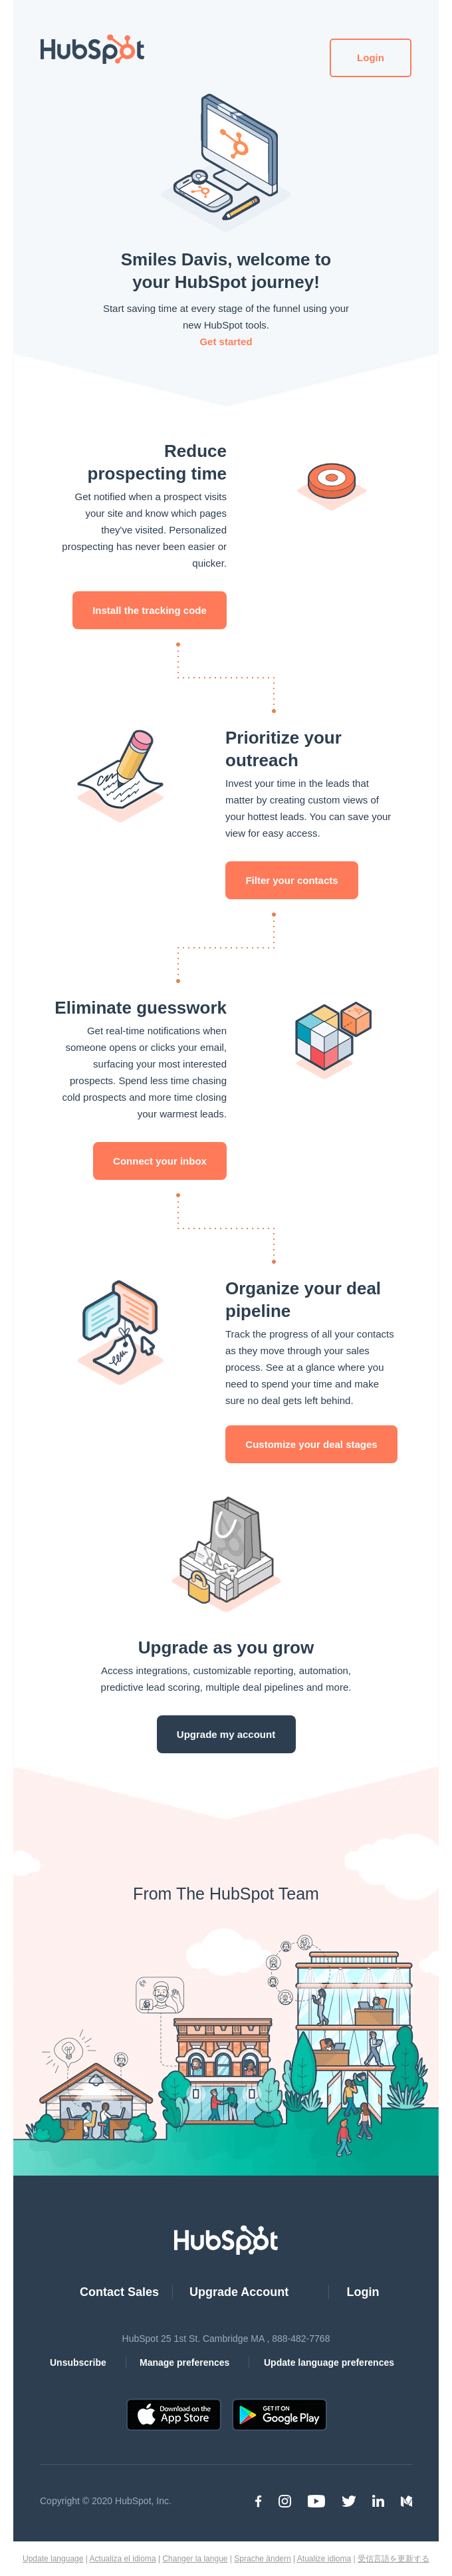 HubSpot onboarding email